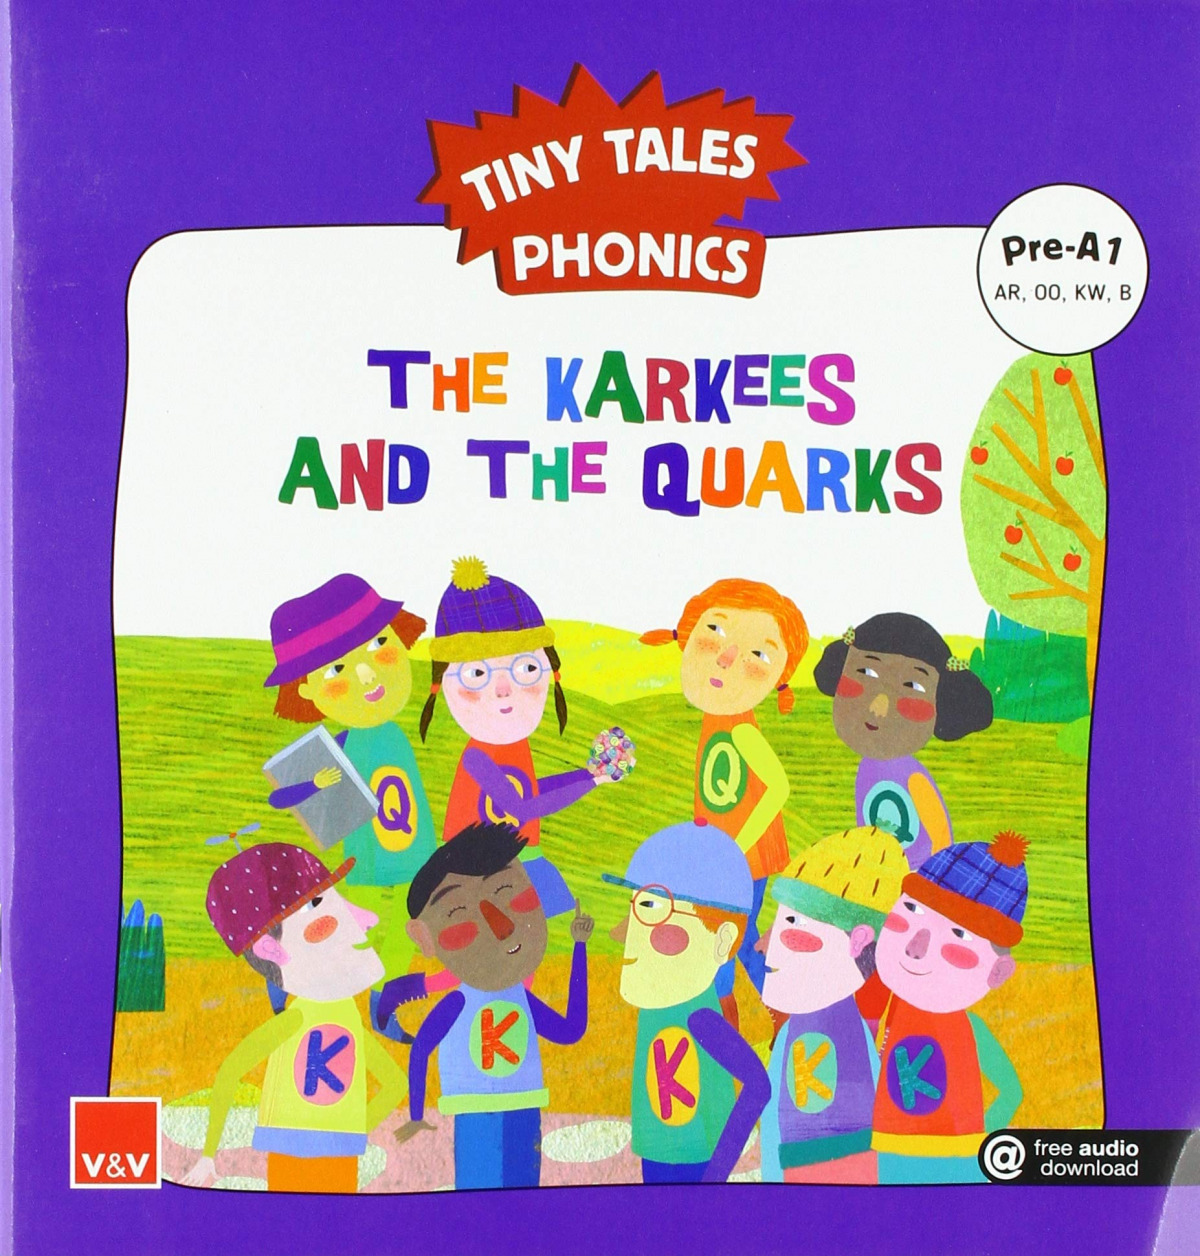 THE KARKEES AND THE QUARKS